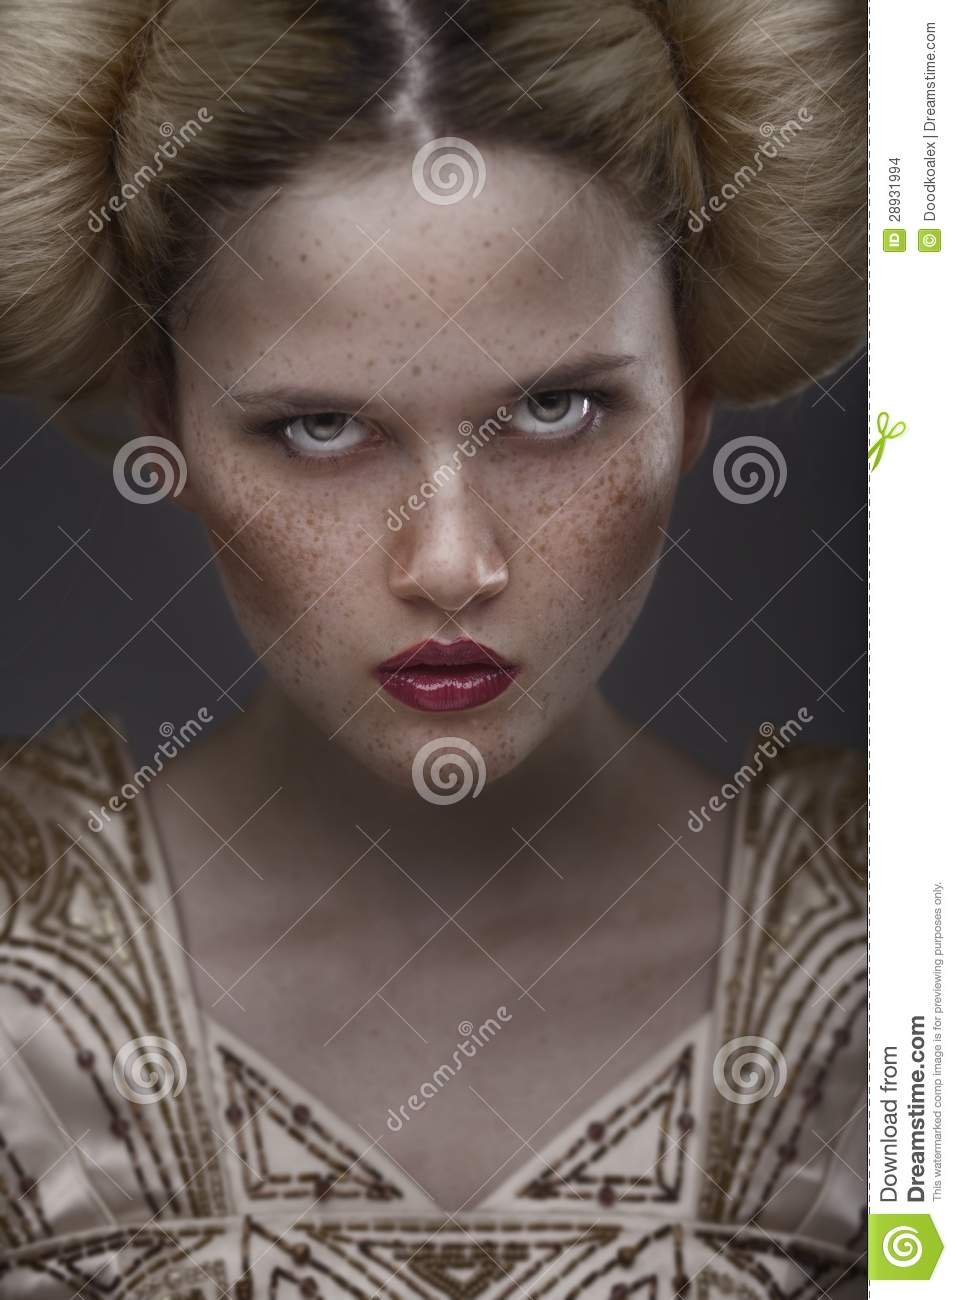 Portrait Of Fashion Beauty Model With Freckles Stock Photo